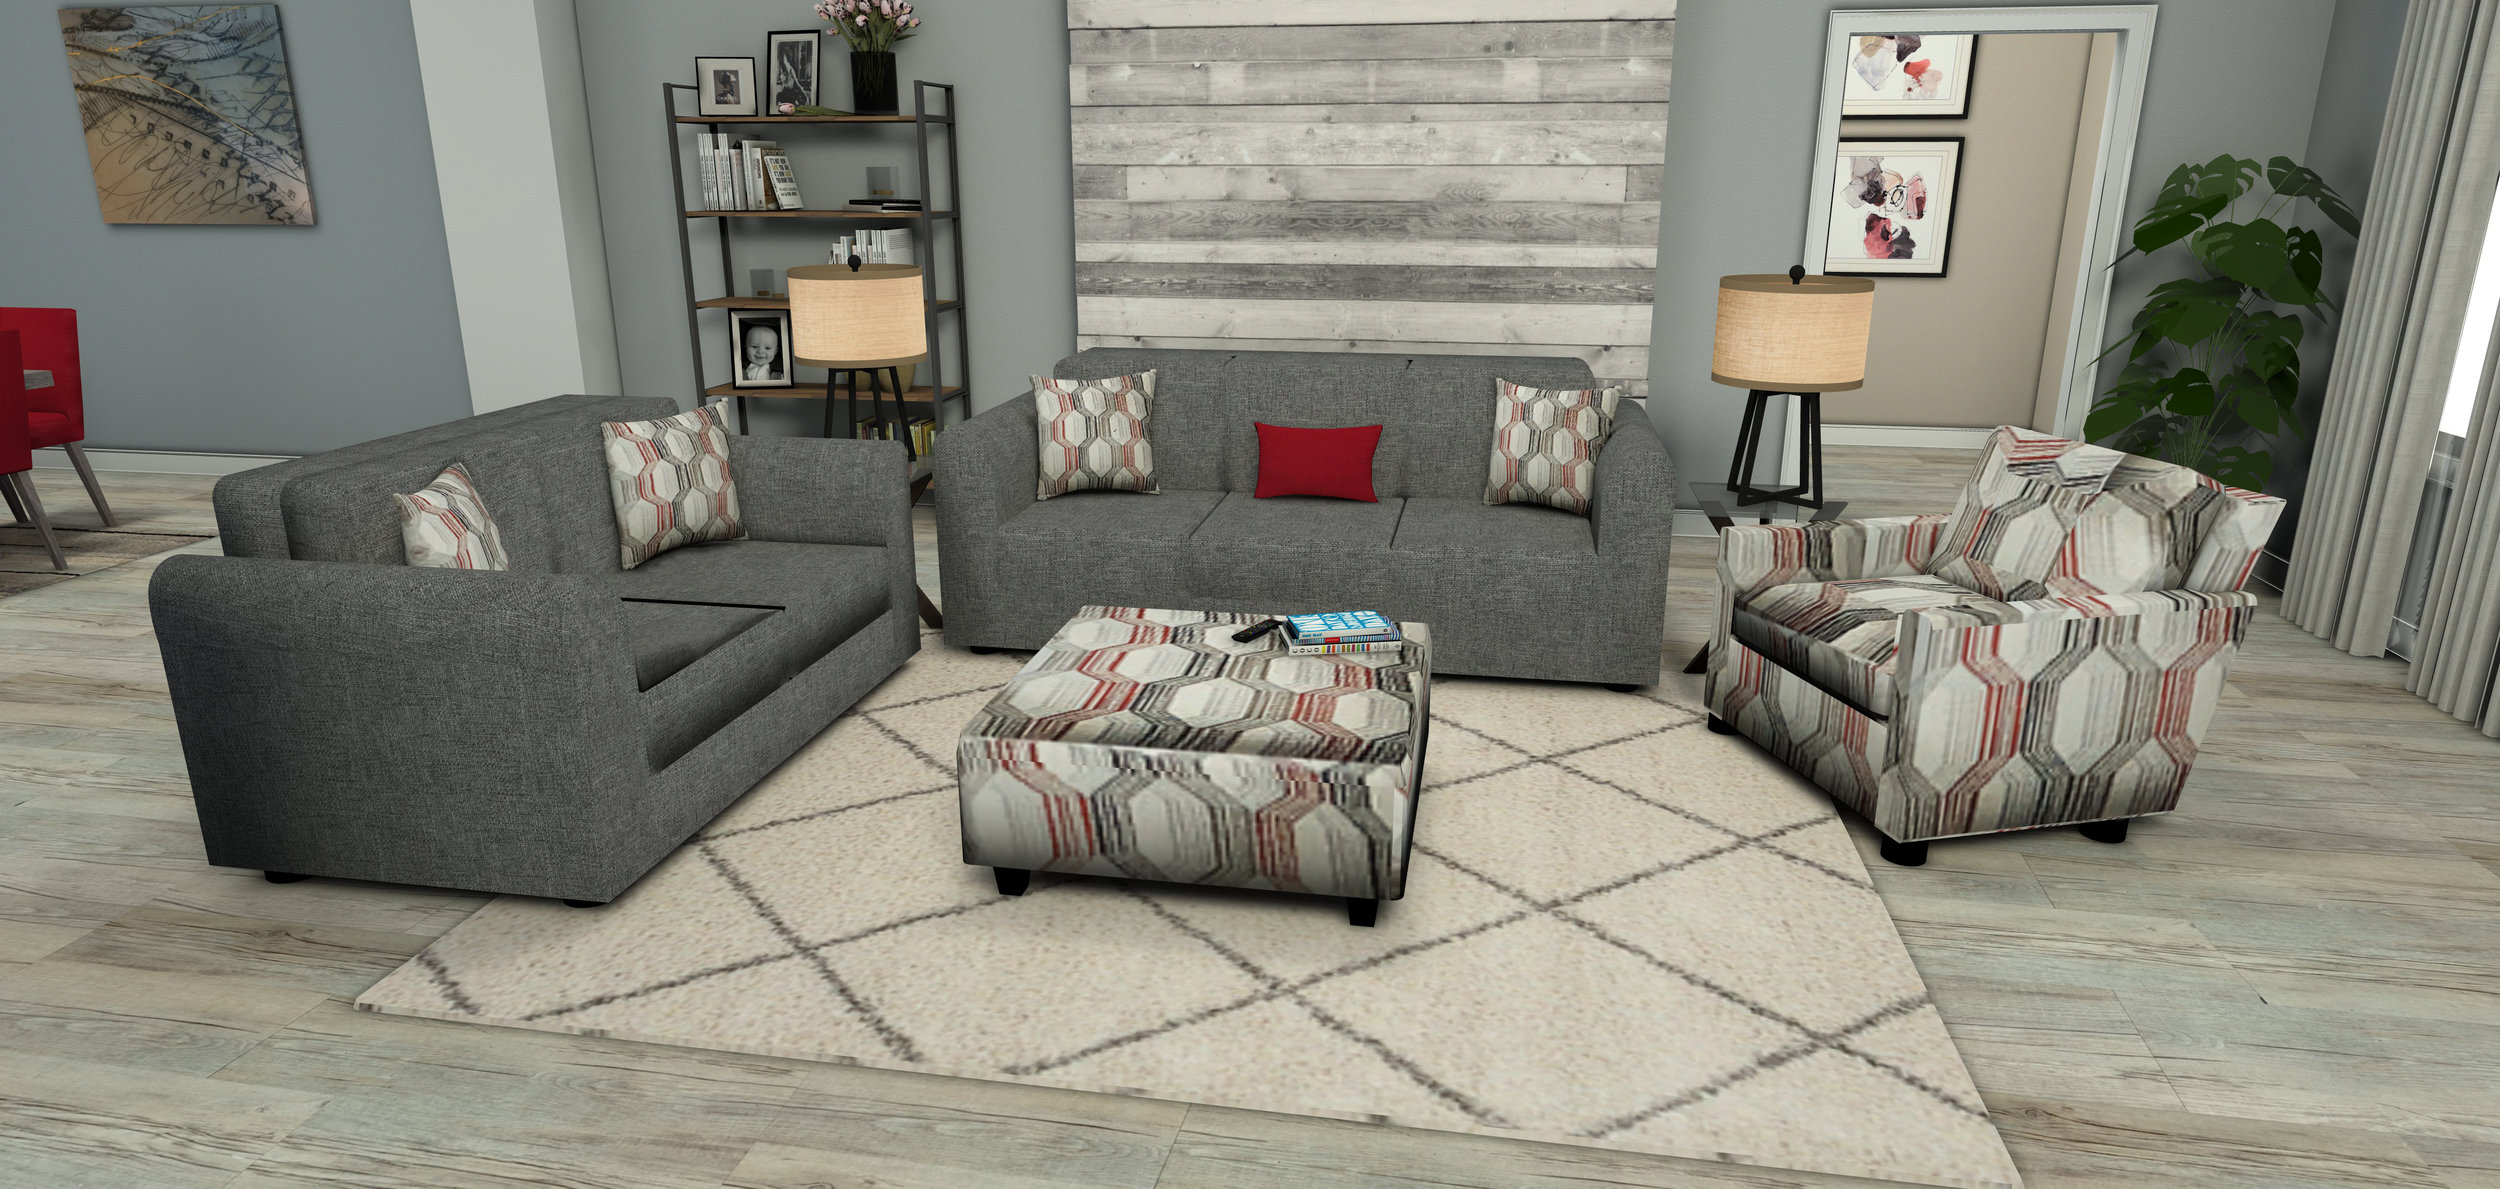 Rooms To Go - Living Room Concept